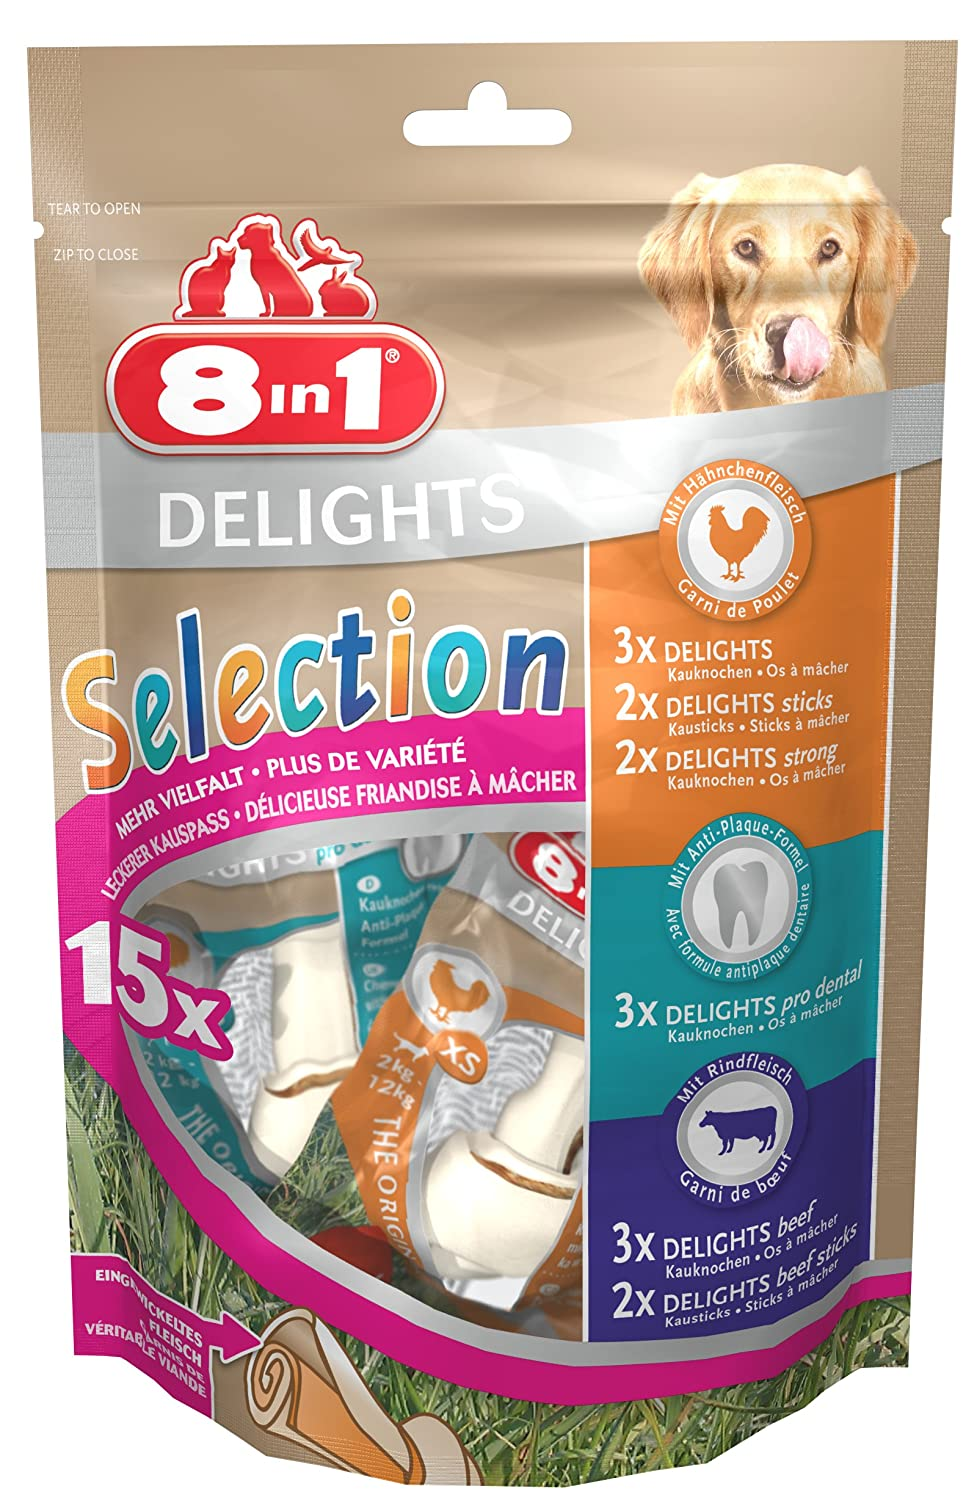 8 in 1 8in1Delights Selection OS à mâcher sains-Mix, taille XS, différentes Snacks pour petits, 15pièces (1x 248G) 8in1 111641